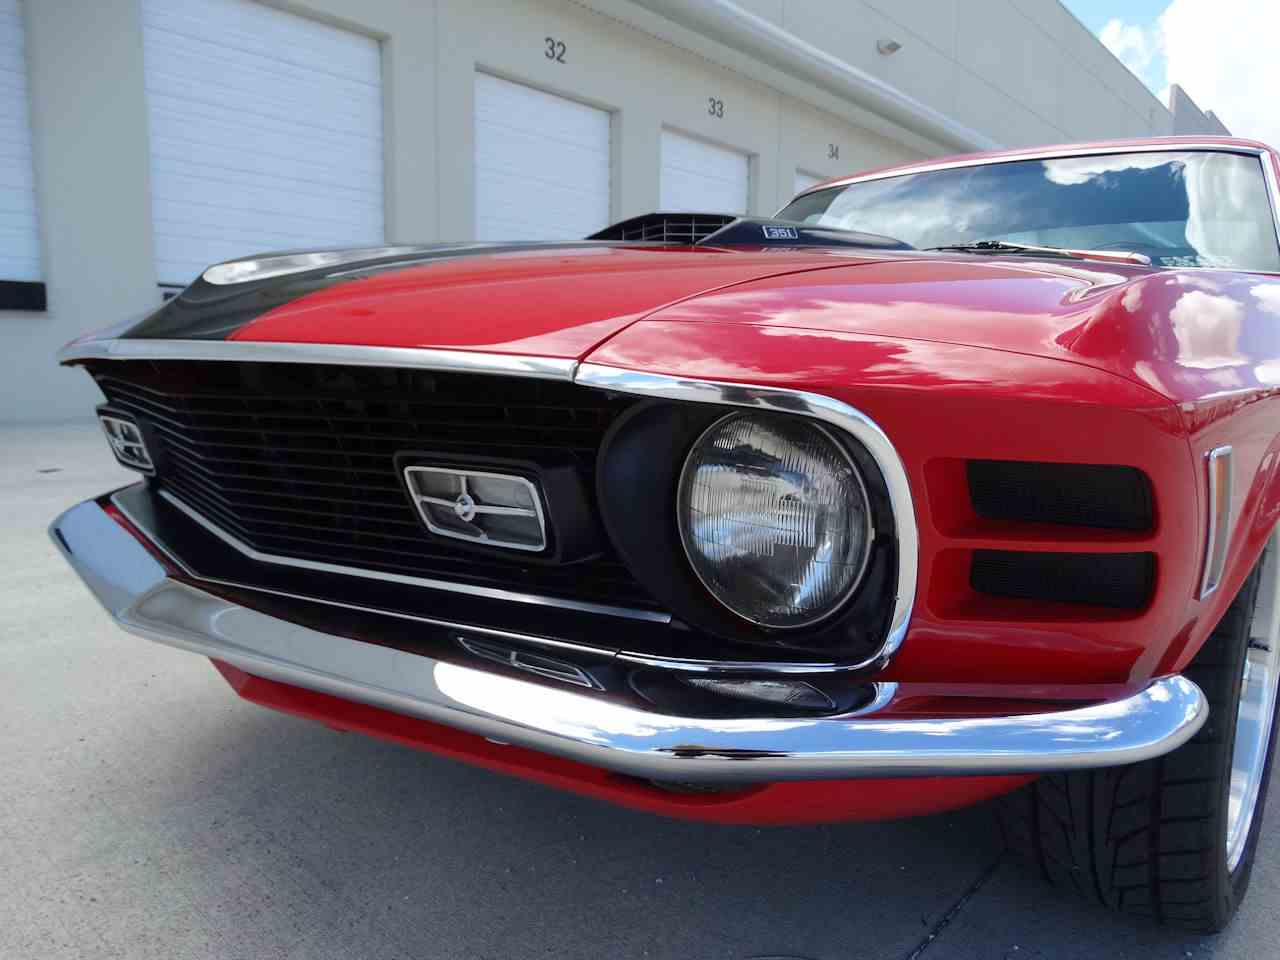 Large Picture of 1970 Ford Mustang located in Florida - $60,000.00 Offered by Gateway Classic Cars - Fort Lauderdale - LG4A